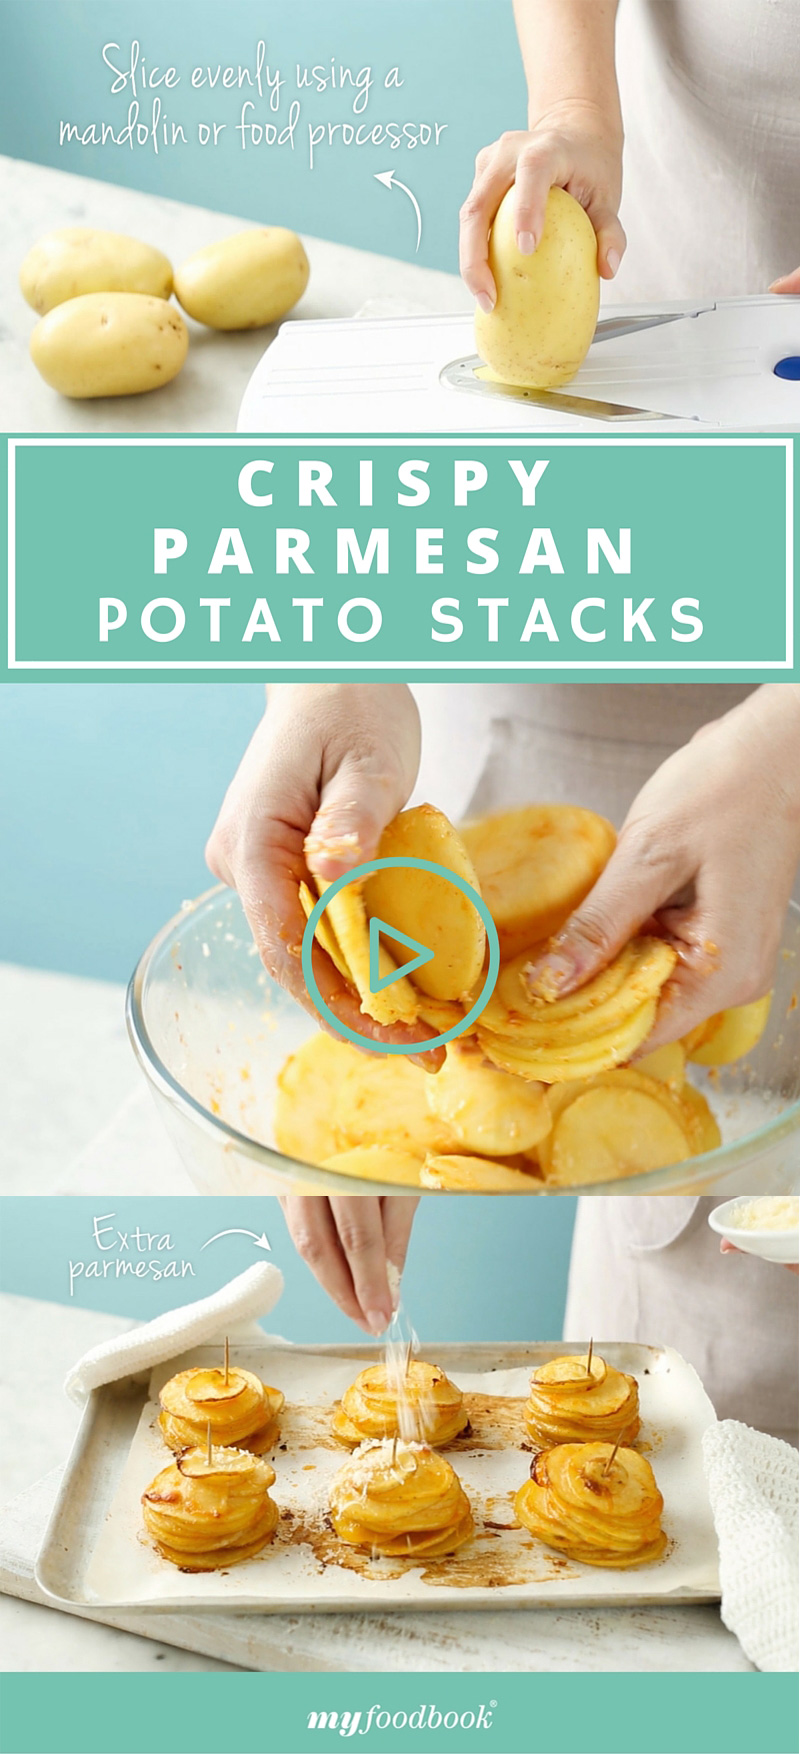 How to make delicious potato stacks!